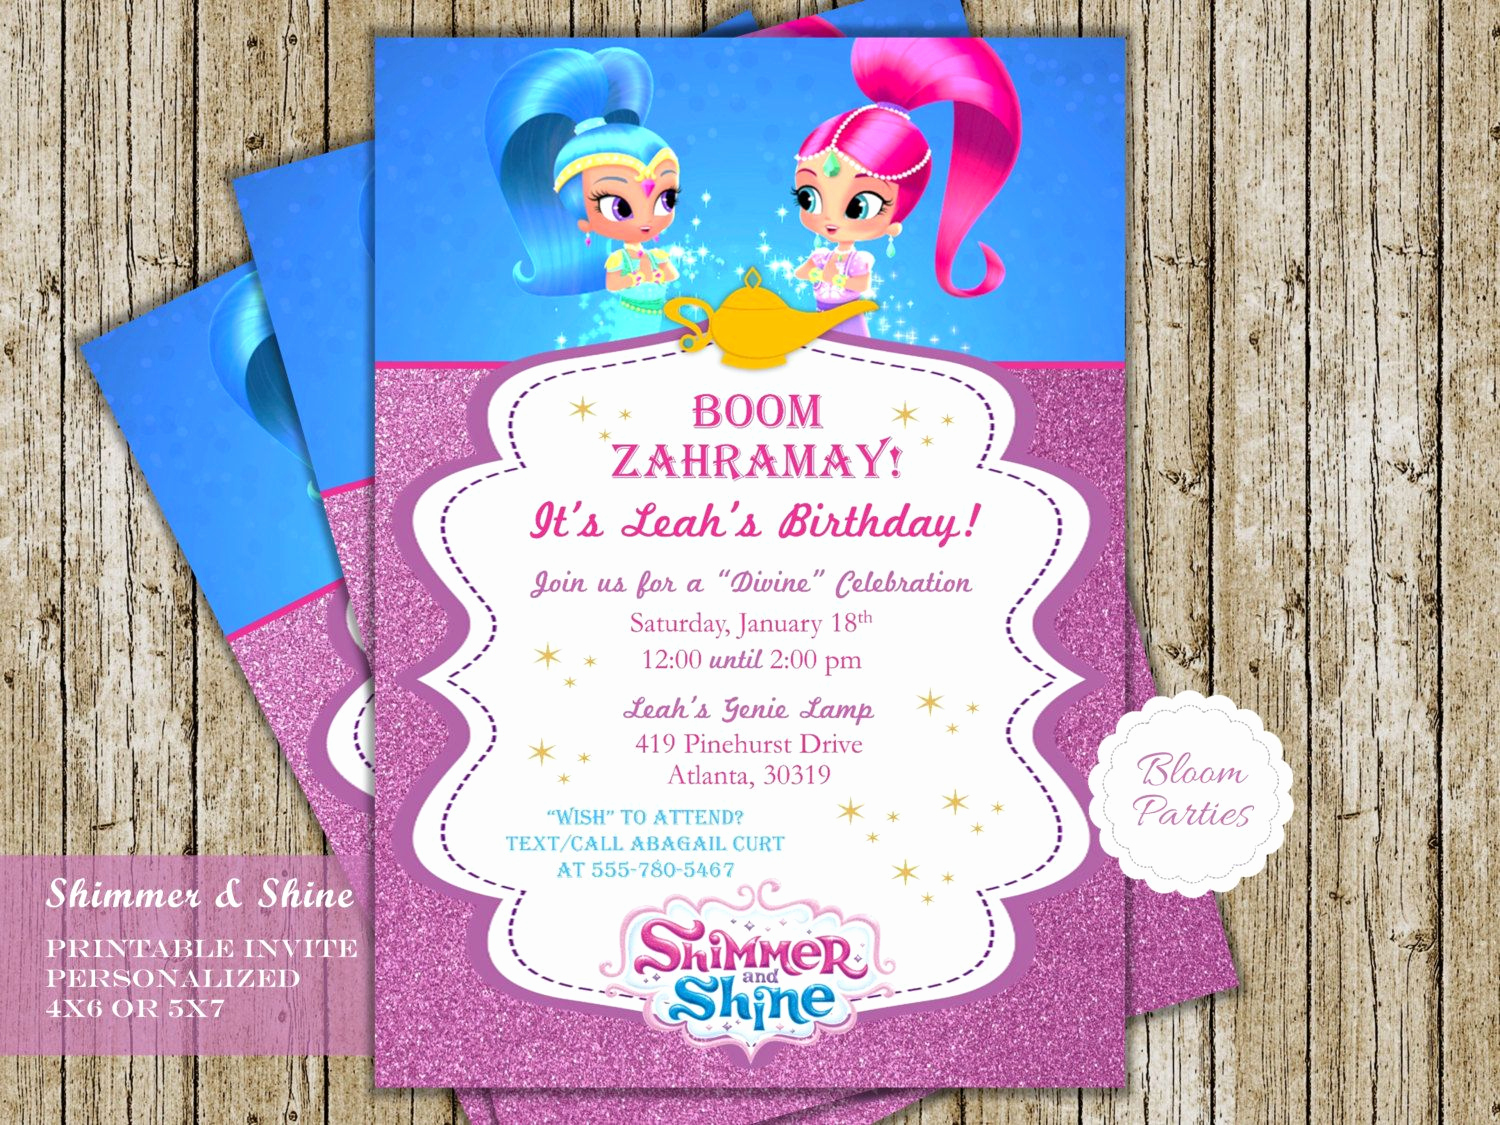 Shimmer and Shine Invitation Template Inspirational Shimmer and Shine Genie Birthday Invitation